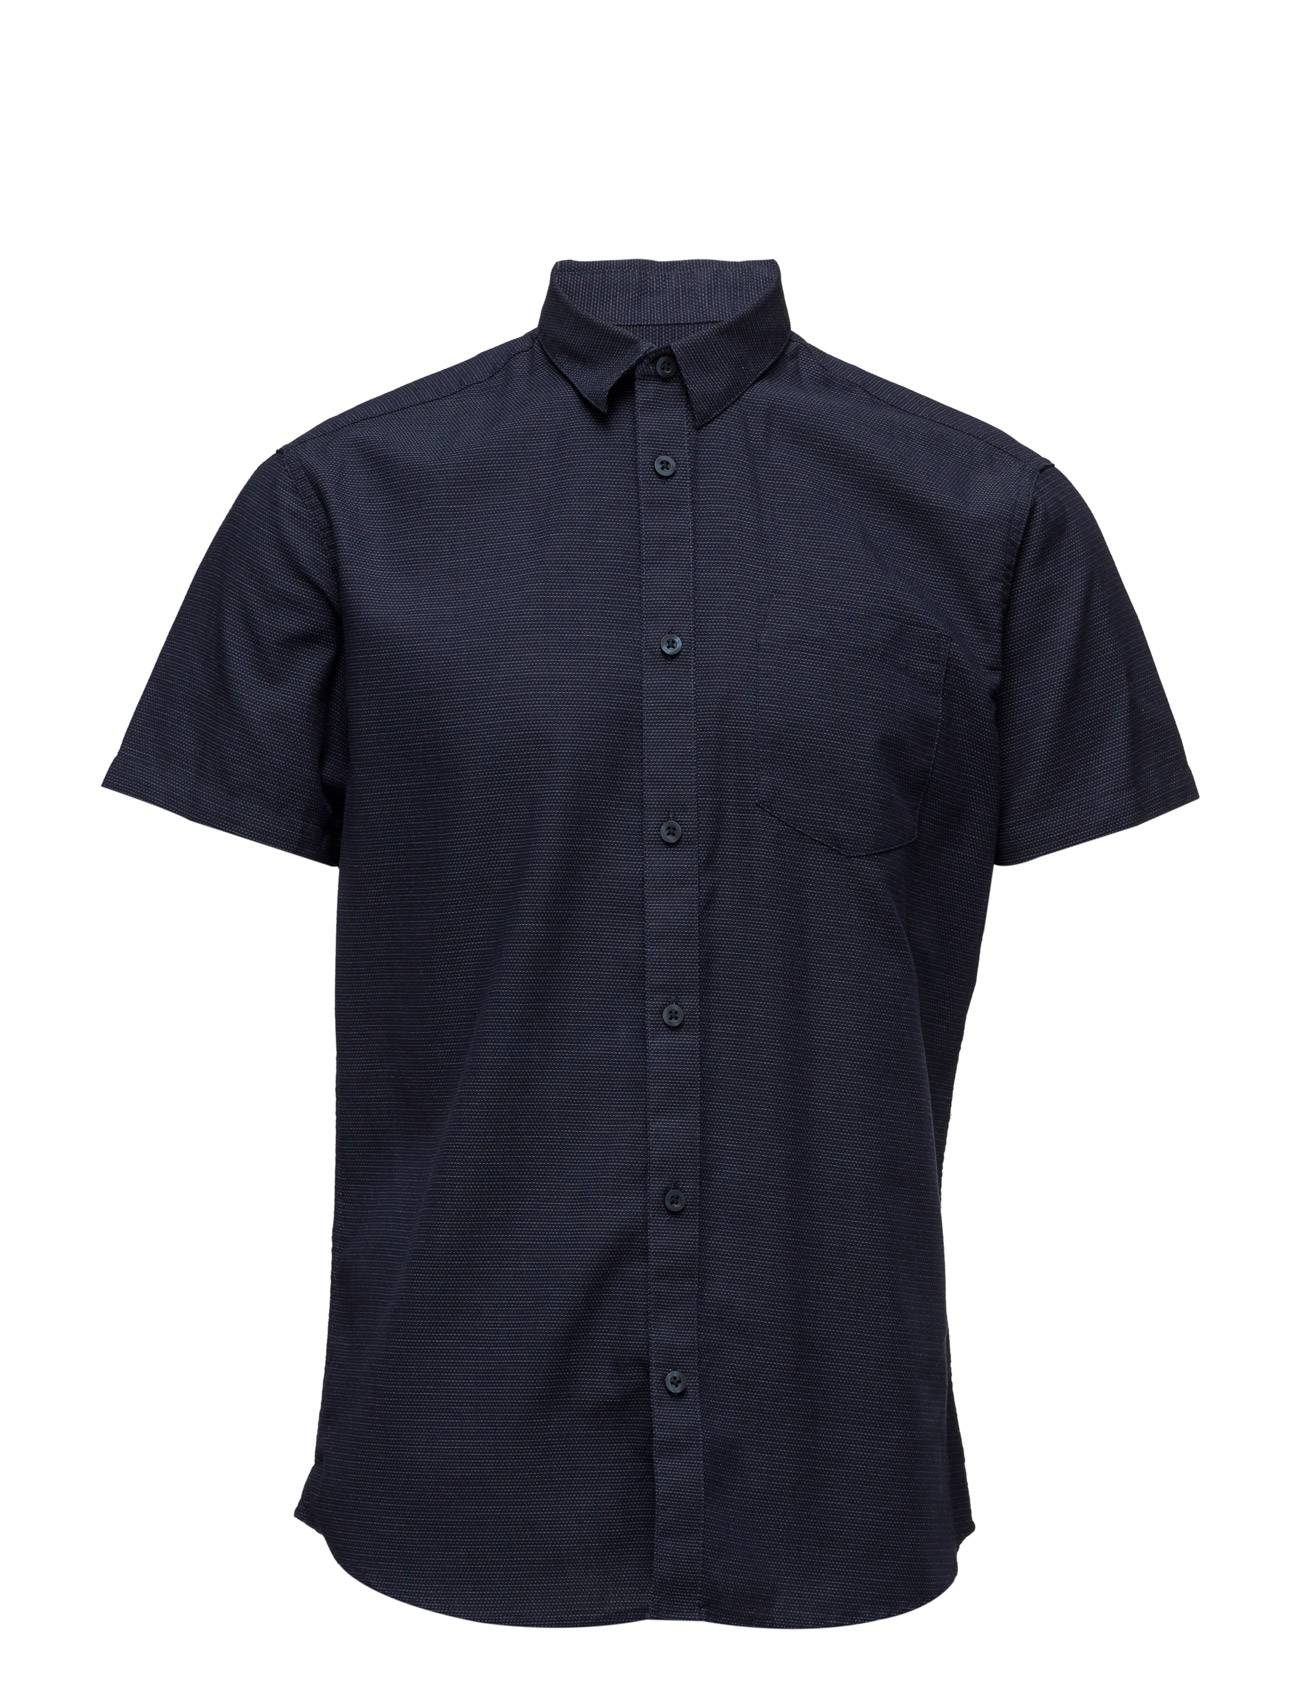 Selected Homme Shdoneclive Shirt Ss